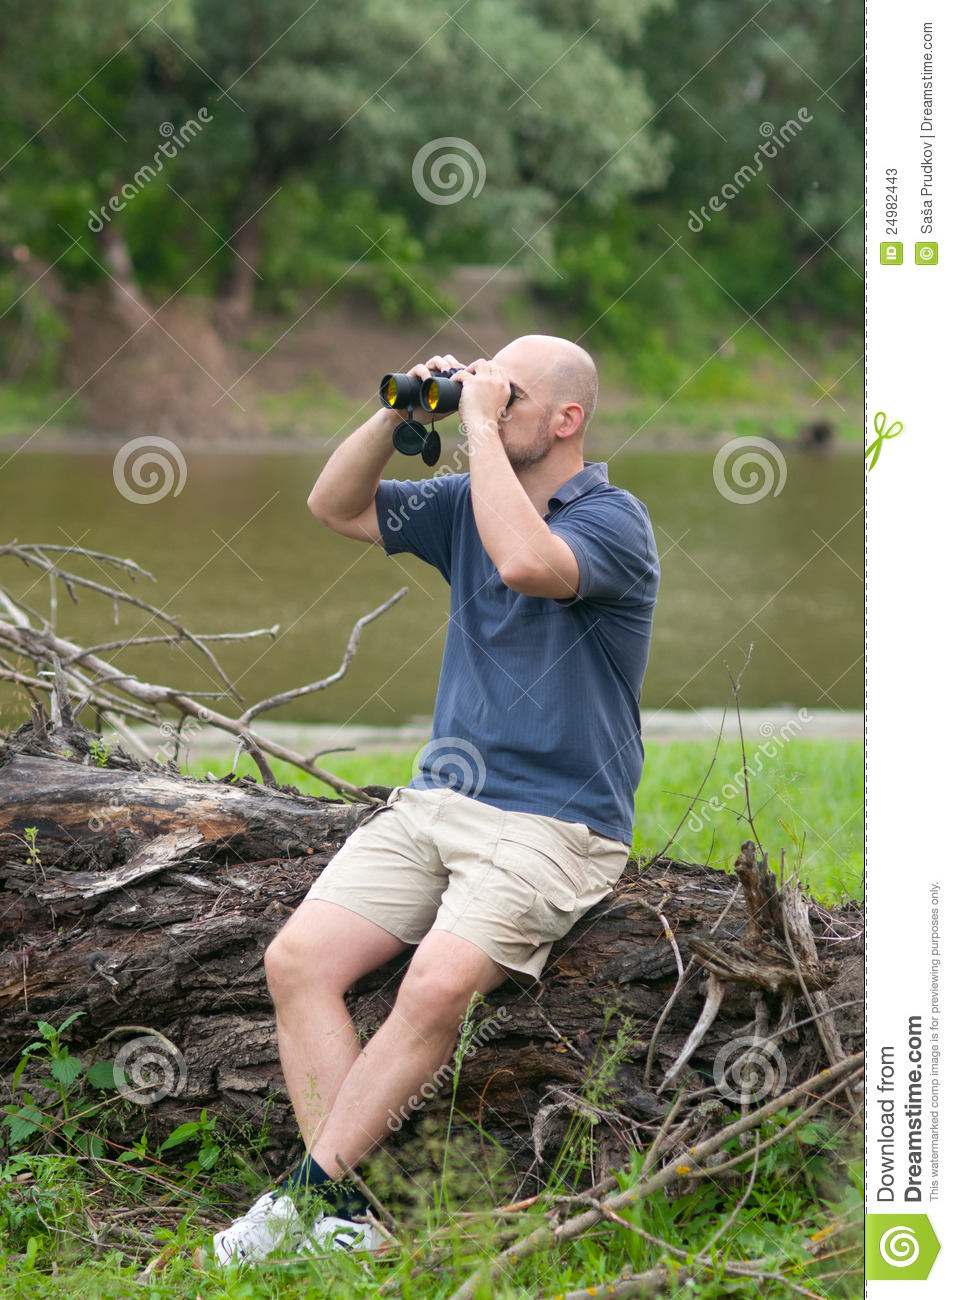 Man Observing Nature With Binoculars Stock Photos - Image ...